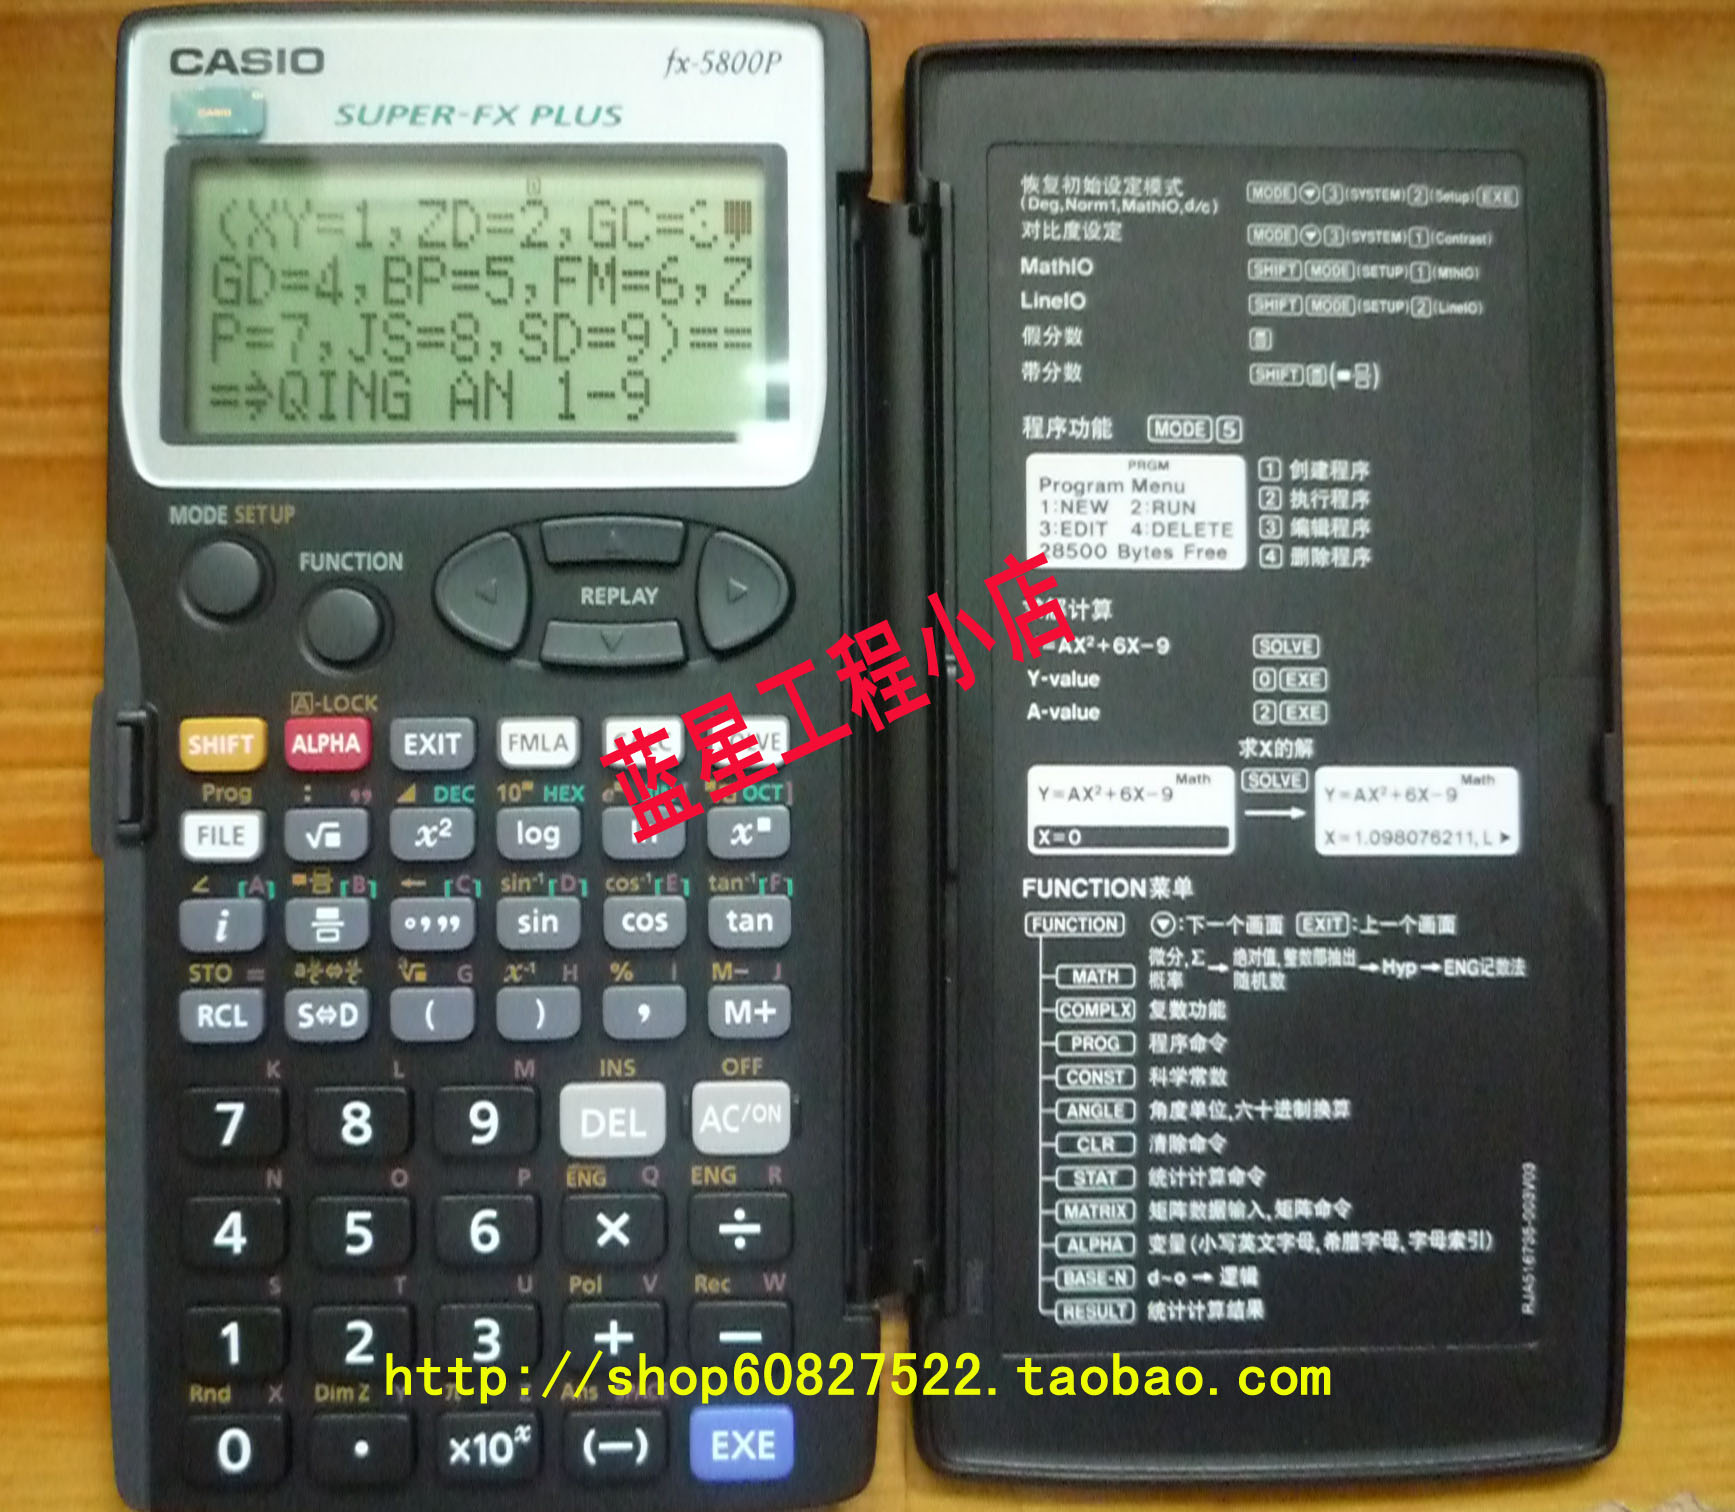 Casio Fx 5800 Calculator Complete Set Of Measuring Assembly Version 24 January Member